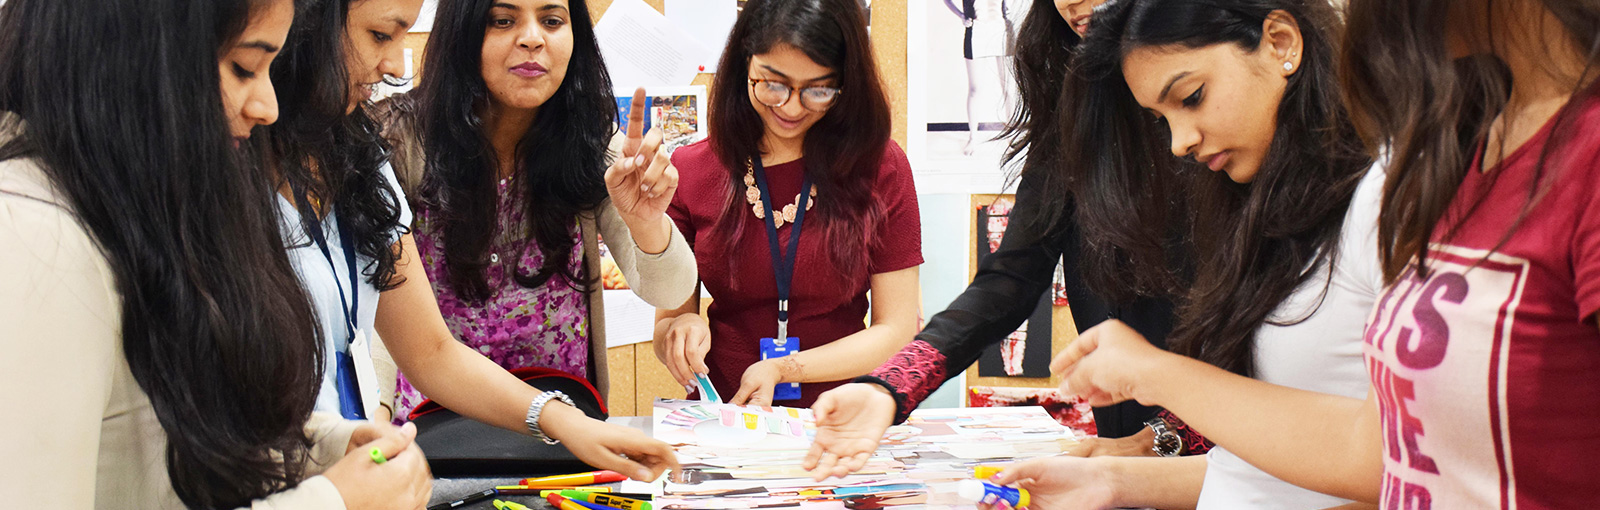 Best Top 5 Courses For Girls In 2019 Sardar Patel Academy And Research Center